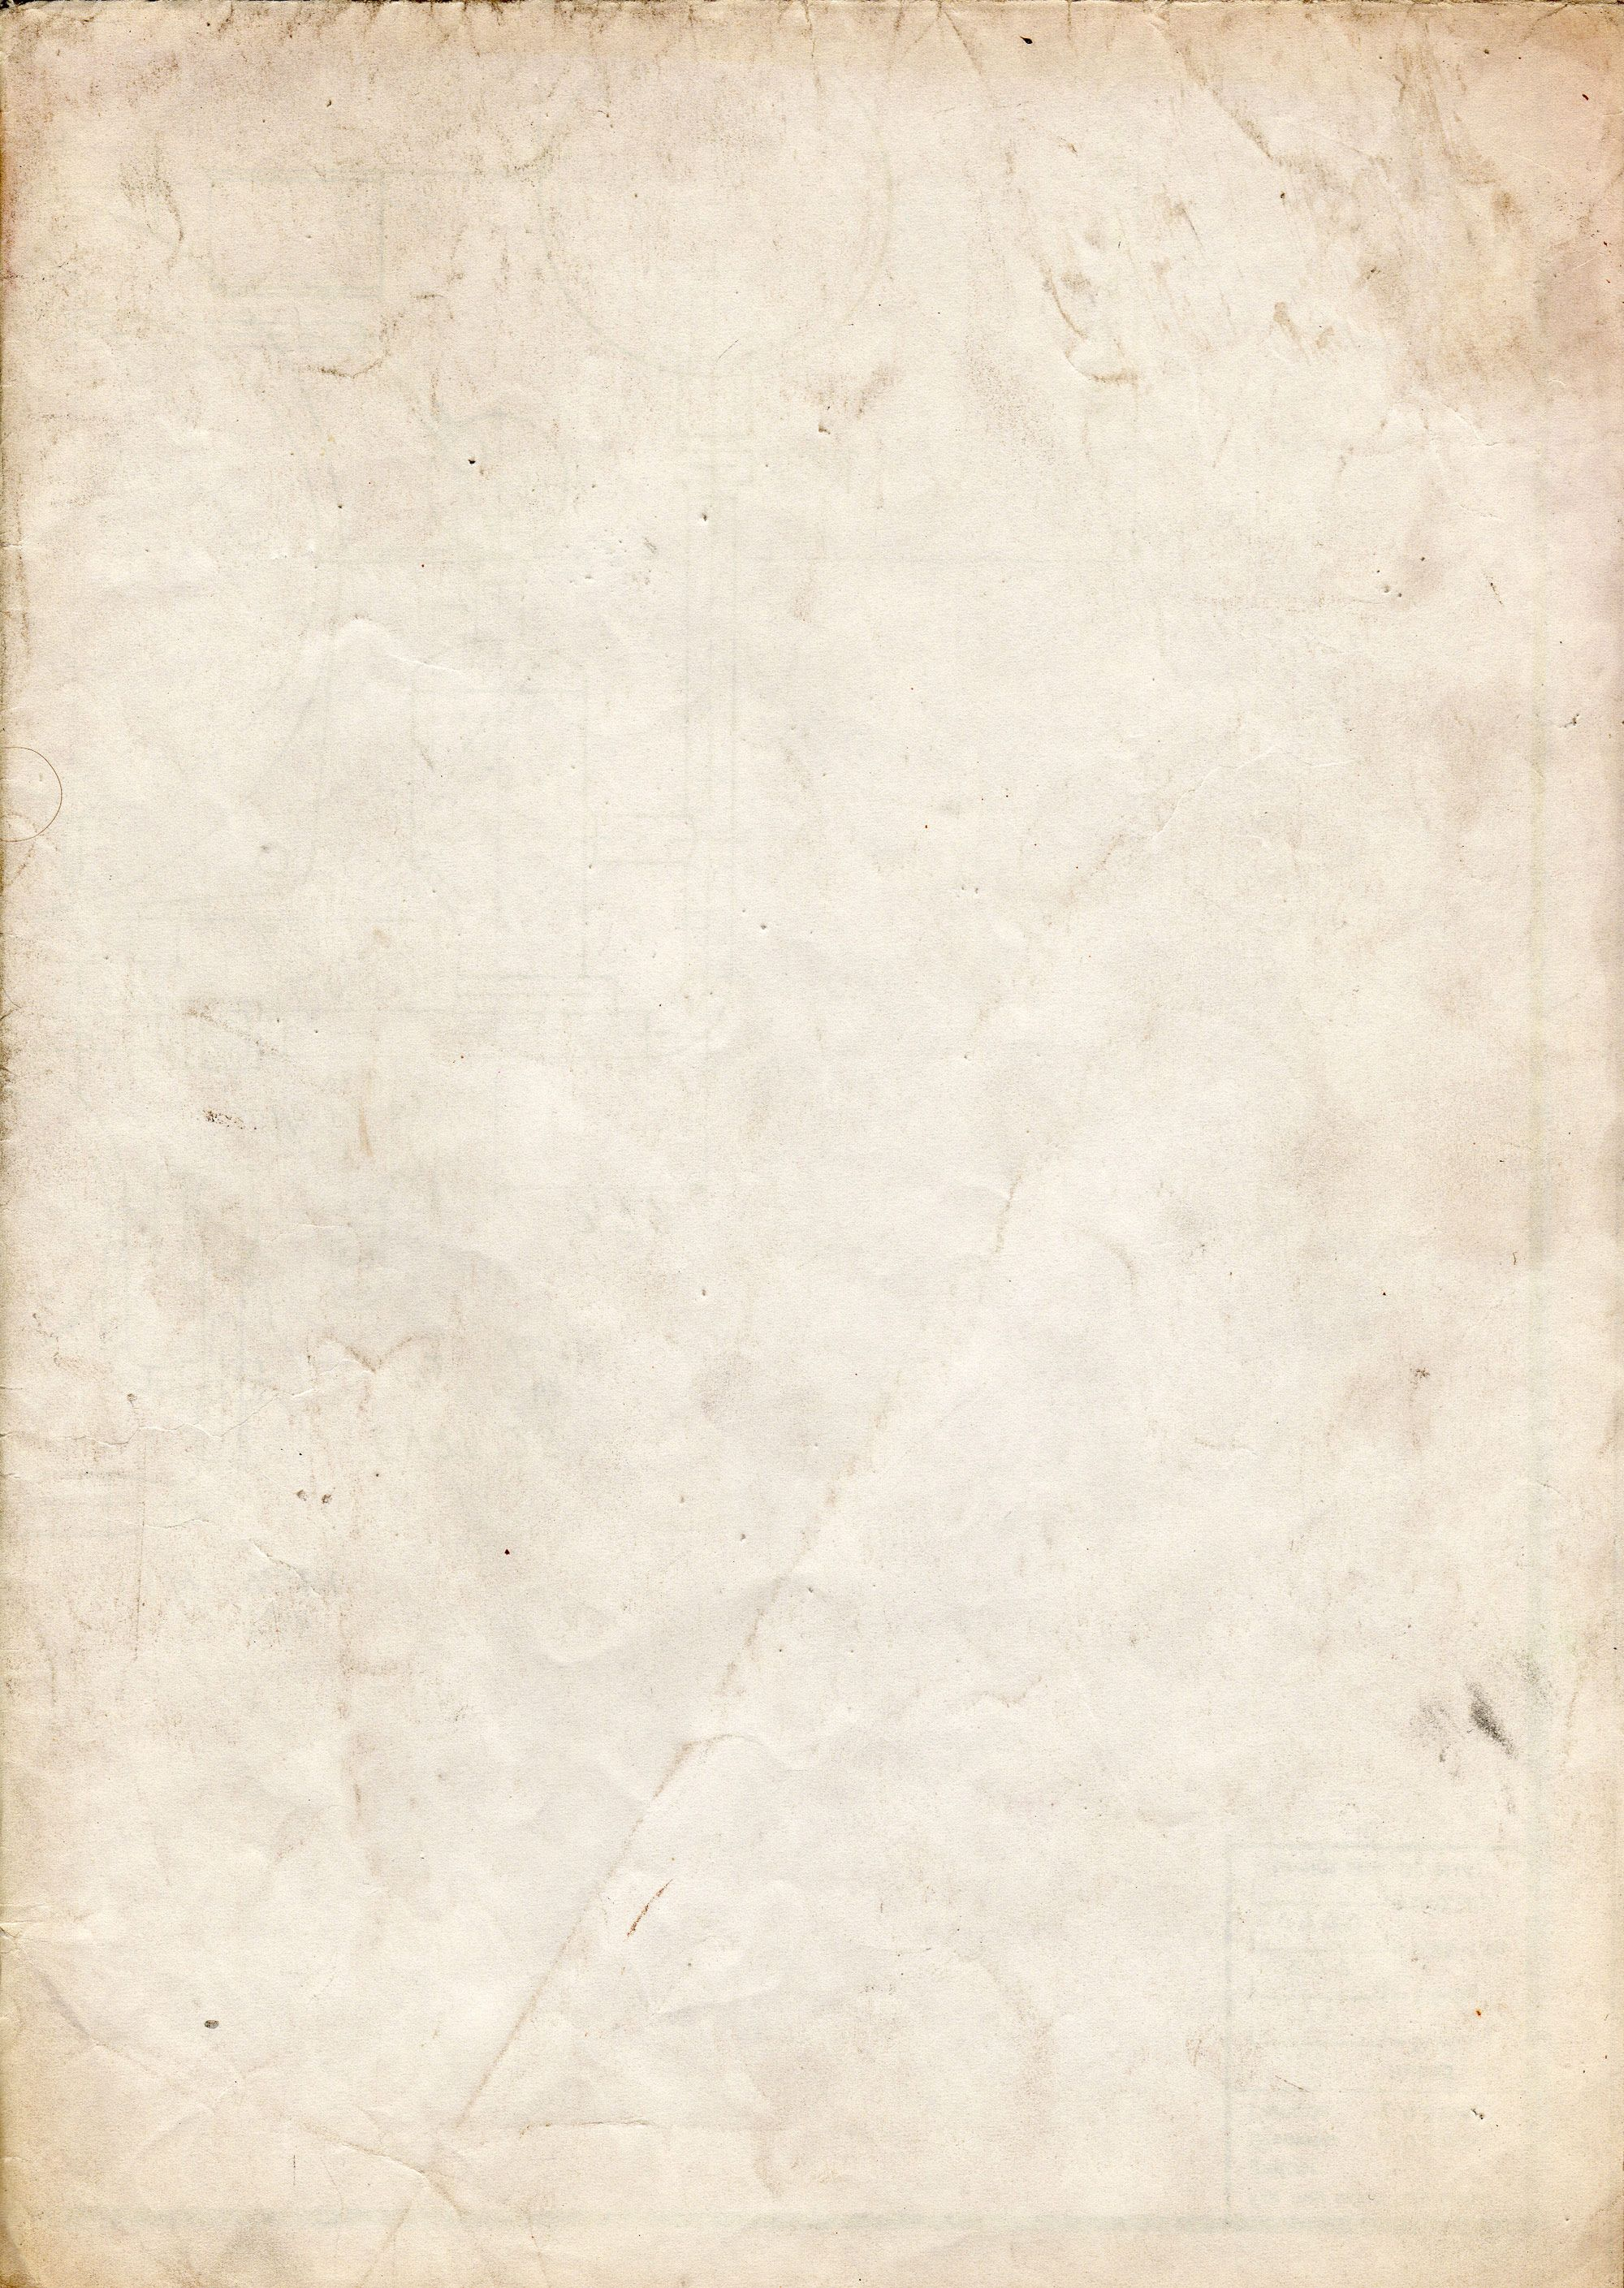 Grungy Paper Texture V 5 By Bashcorpo Deviantart Com On